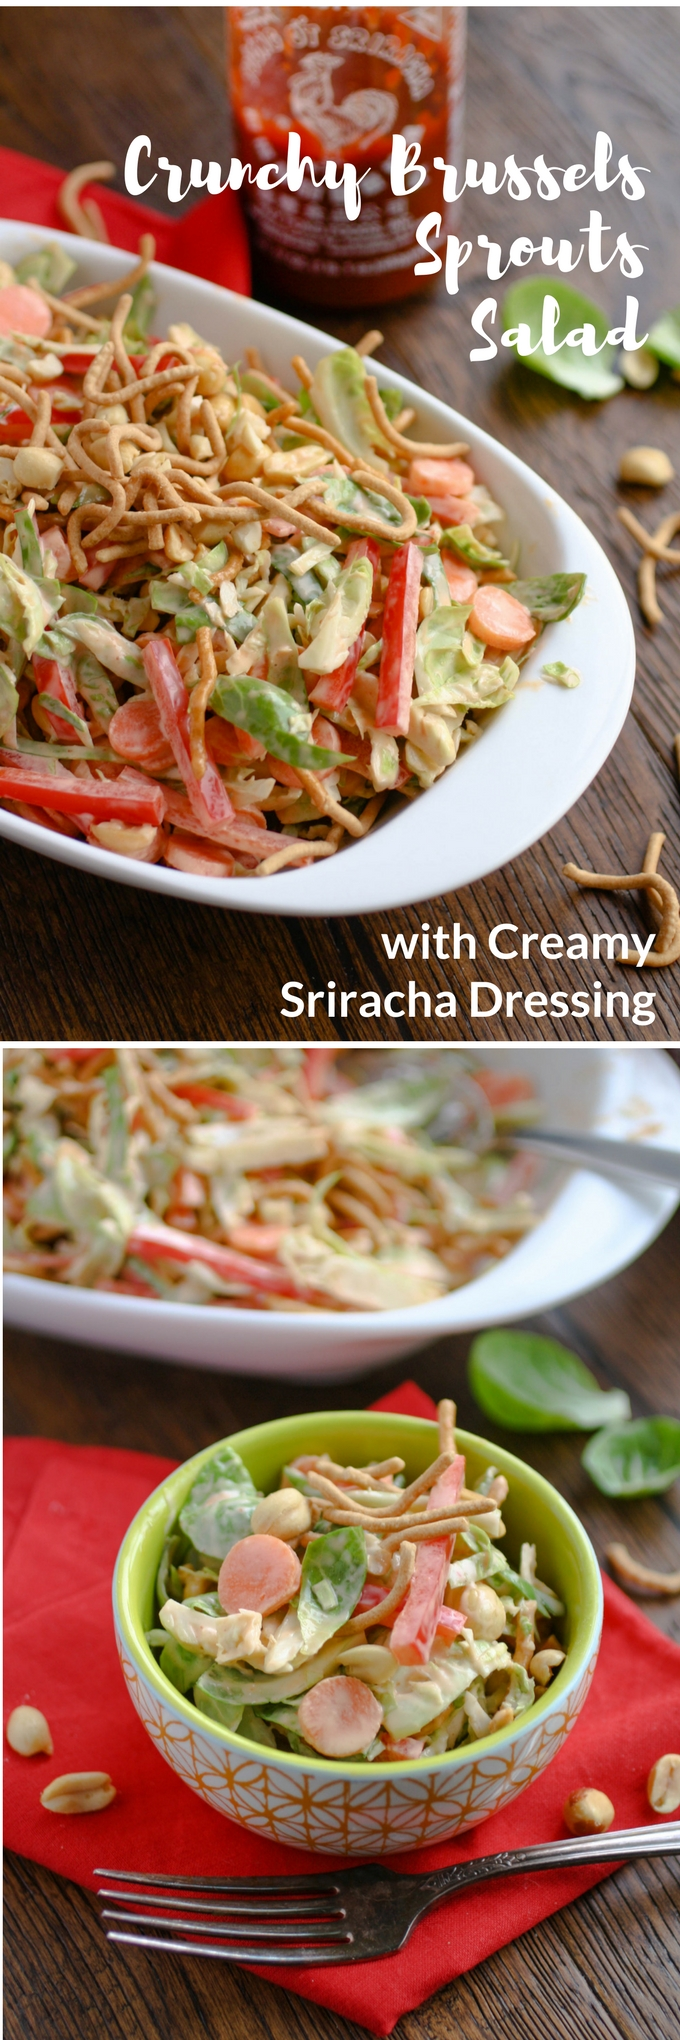 Crunchy Brussels Sprouts Salad with Creamy Sriracha Dressing is a soon-to-be favorite salad in your house! Try it for its delicious flavors and fab textures!